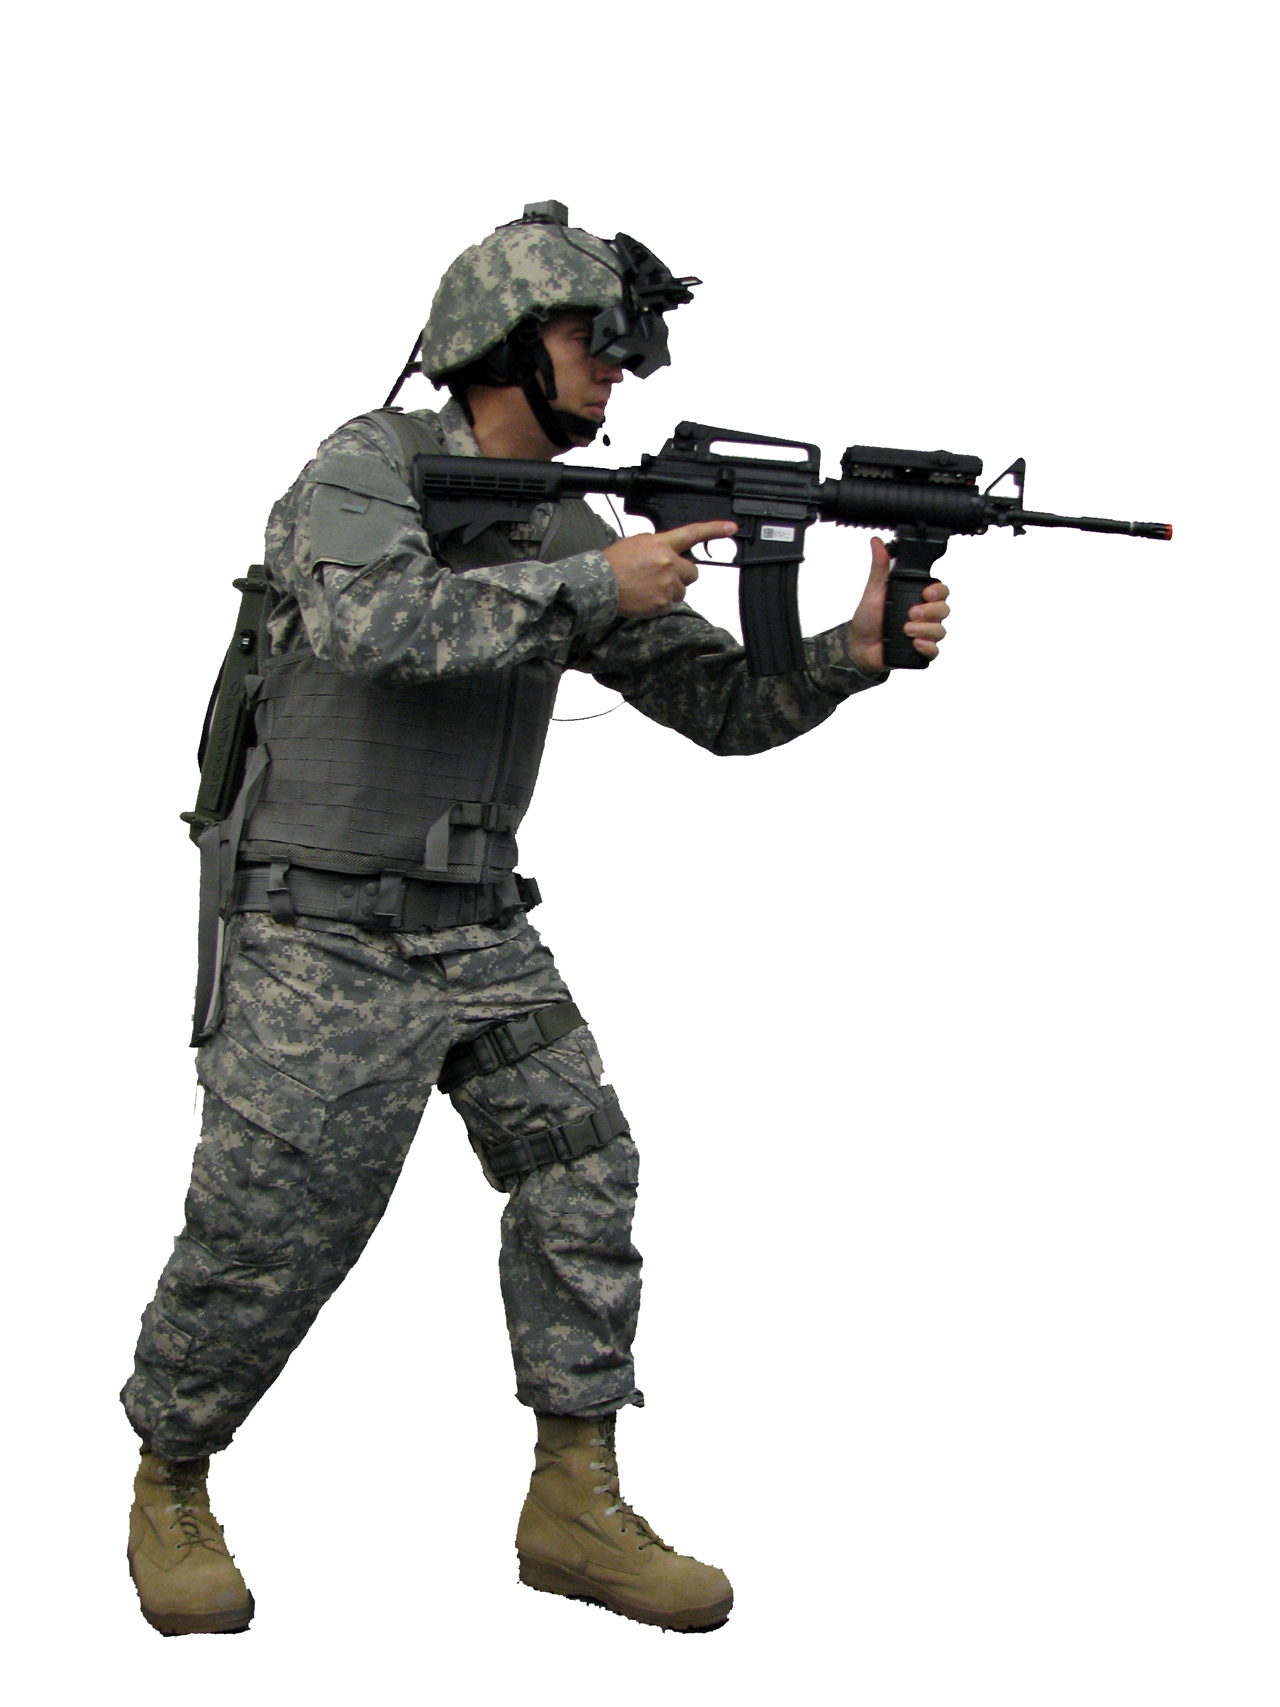 Dismounted Soldier - Gear #2